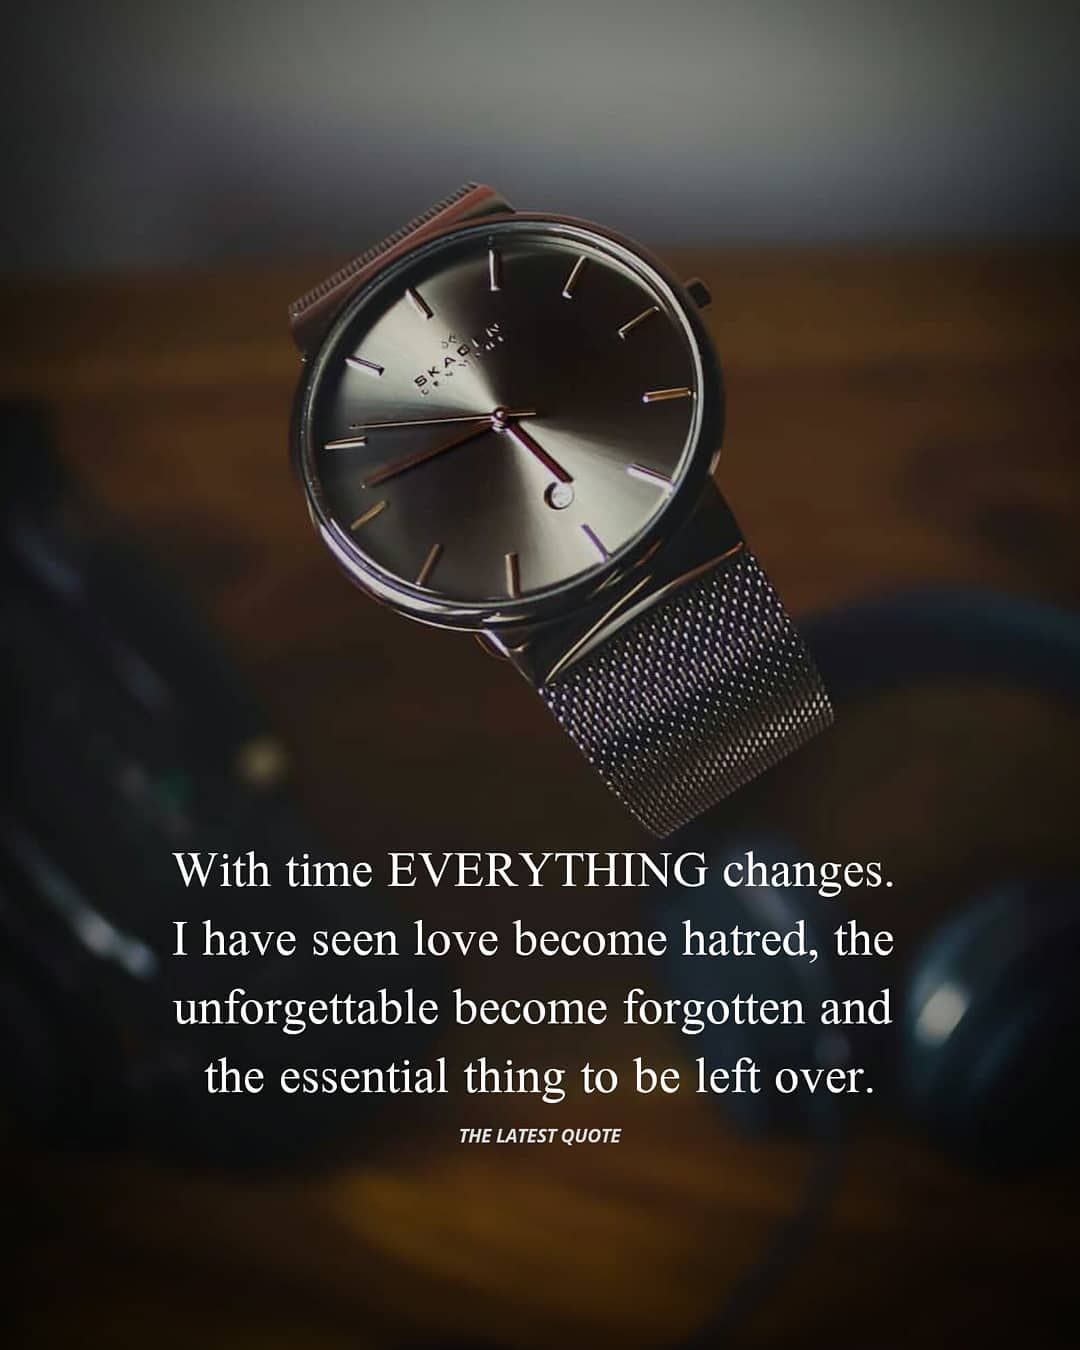 With time EVERYTHING changes I have seen love be e hatred